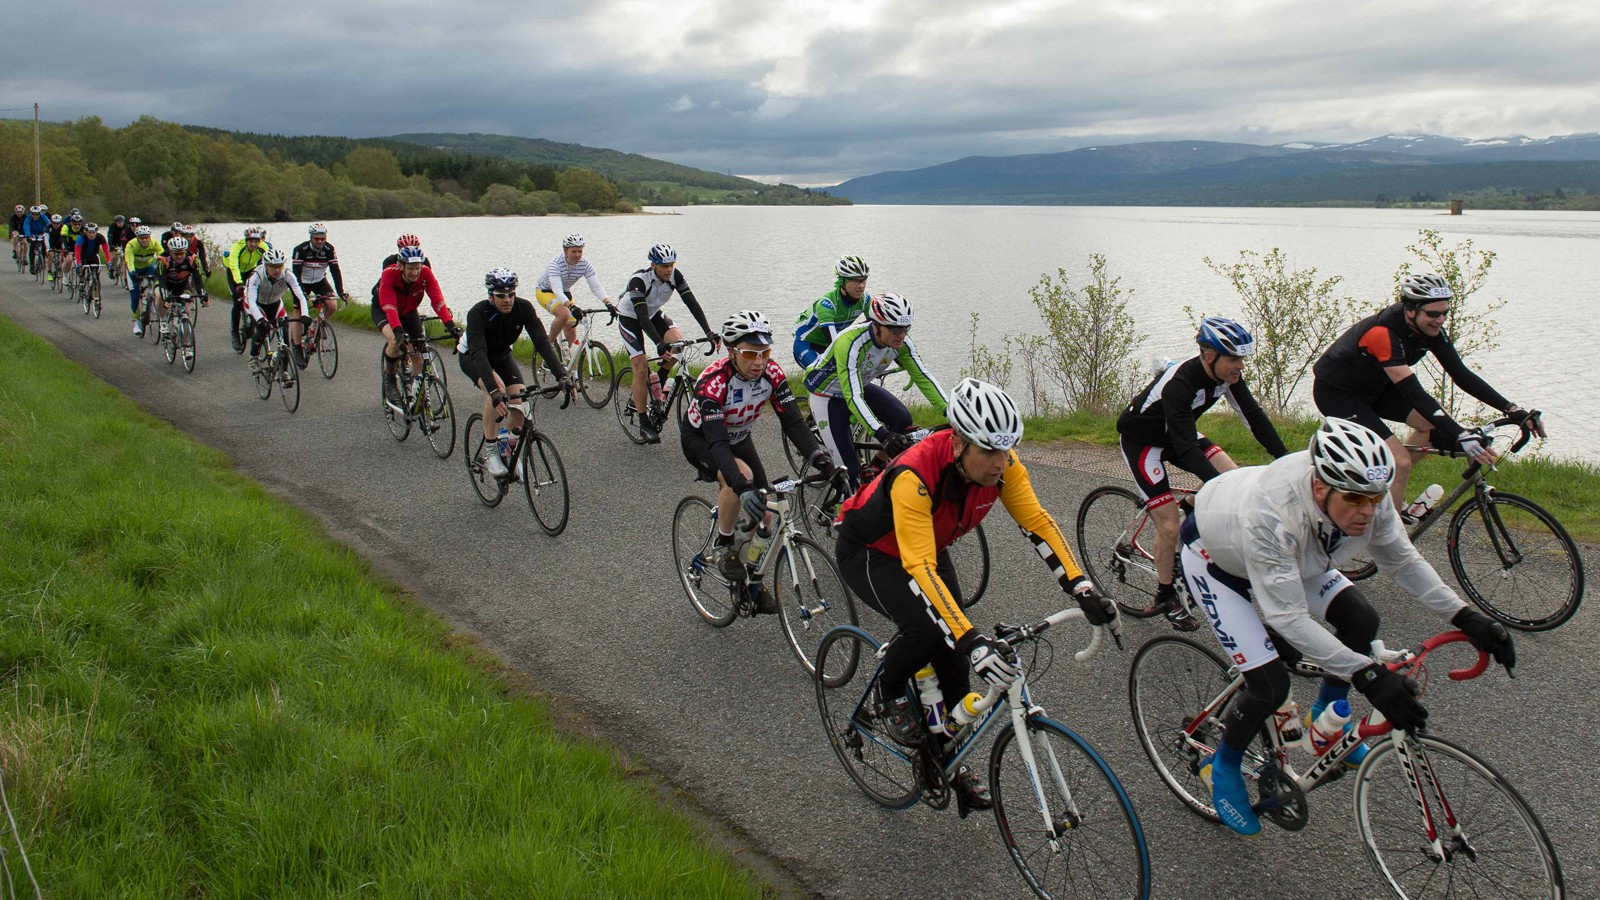 The Etape Caledonia is on the of the UK's most prestigious sportive events